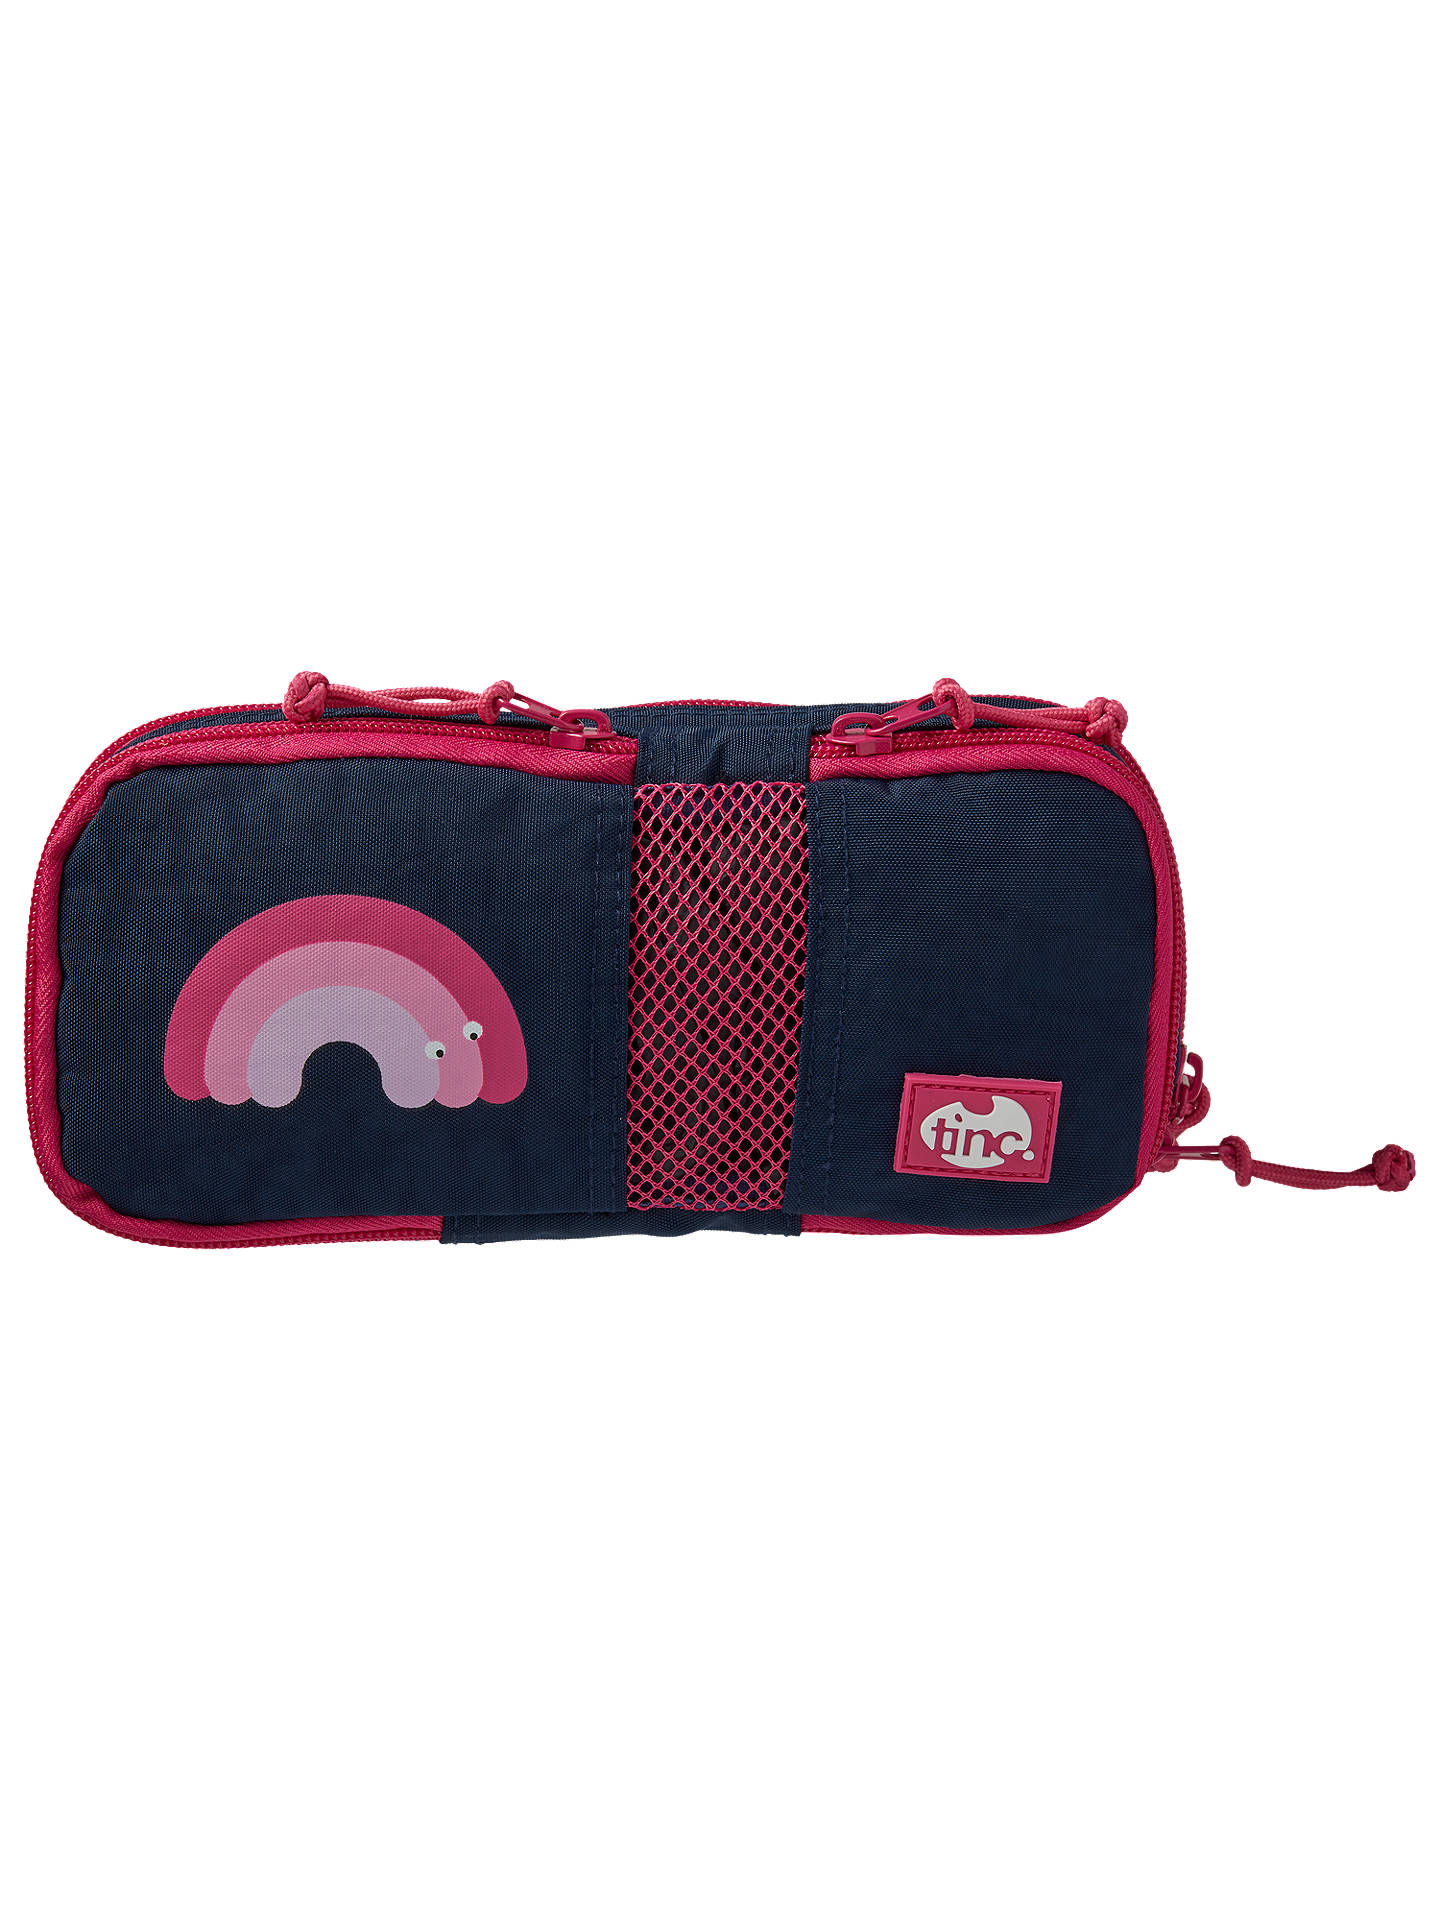 BuyTinc Mallo Compartment Pencil Case, Navy/Pink Online at johnlewis.com